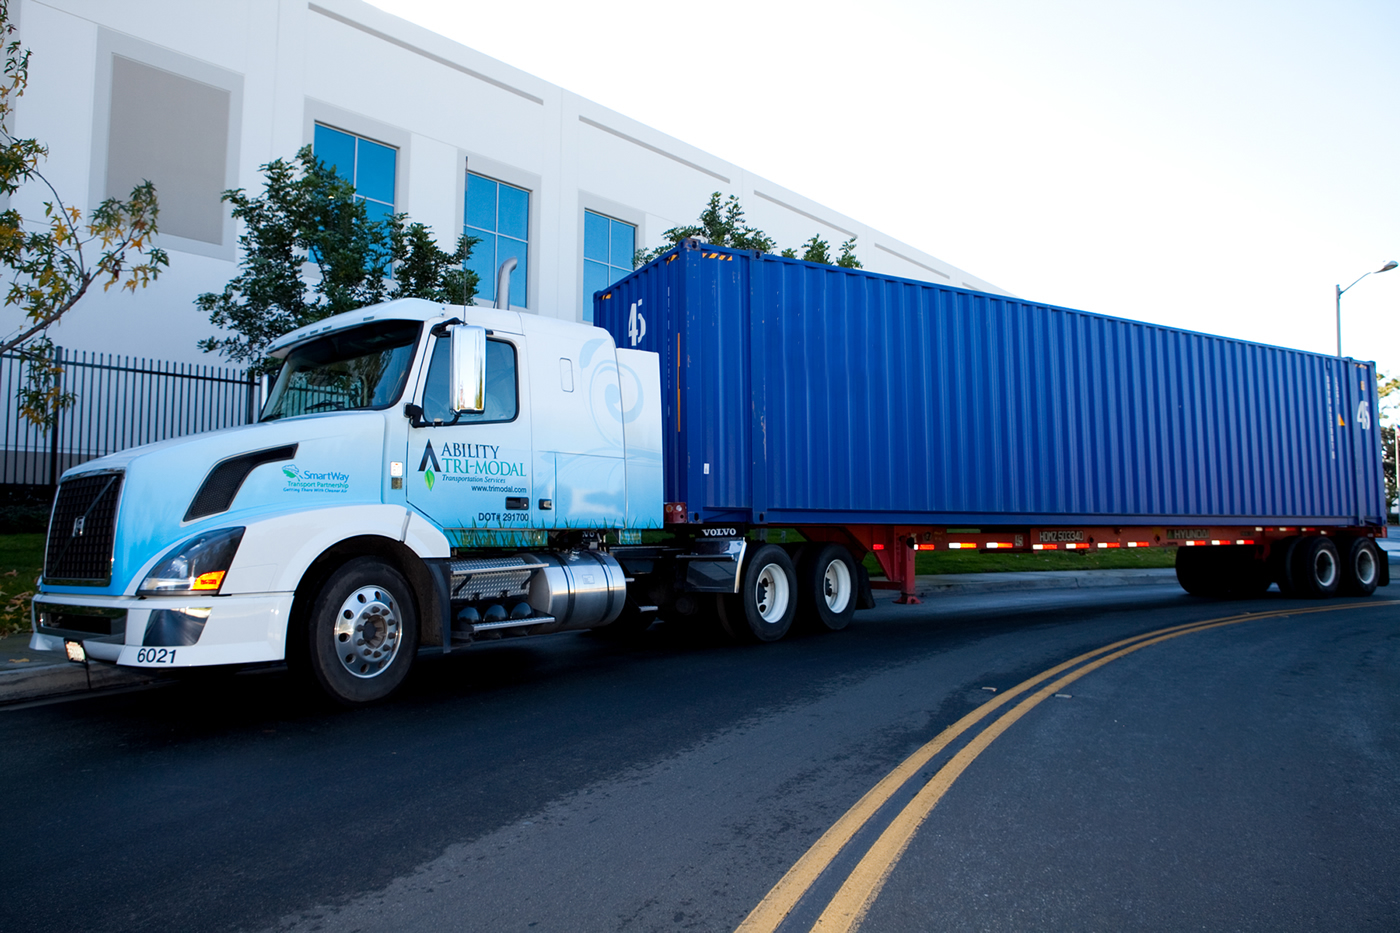 Ability TriModal Trucking Services